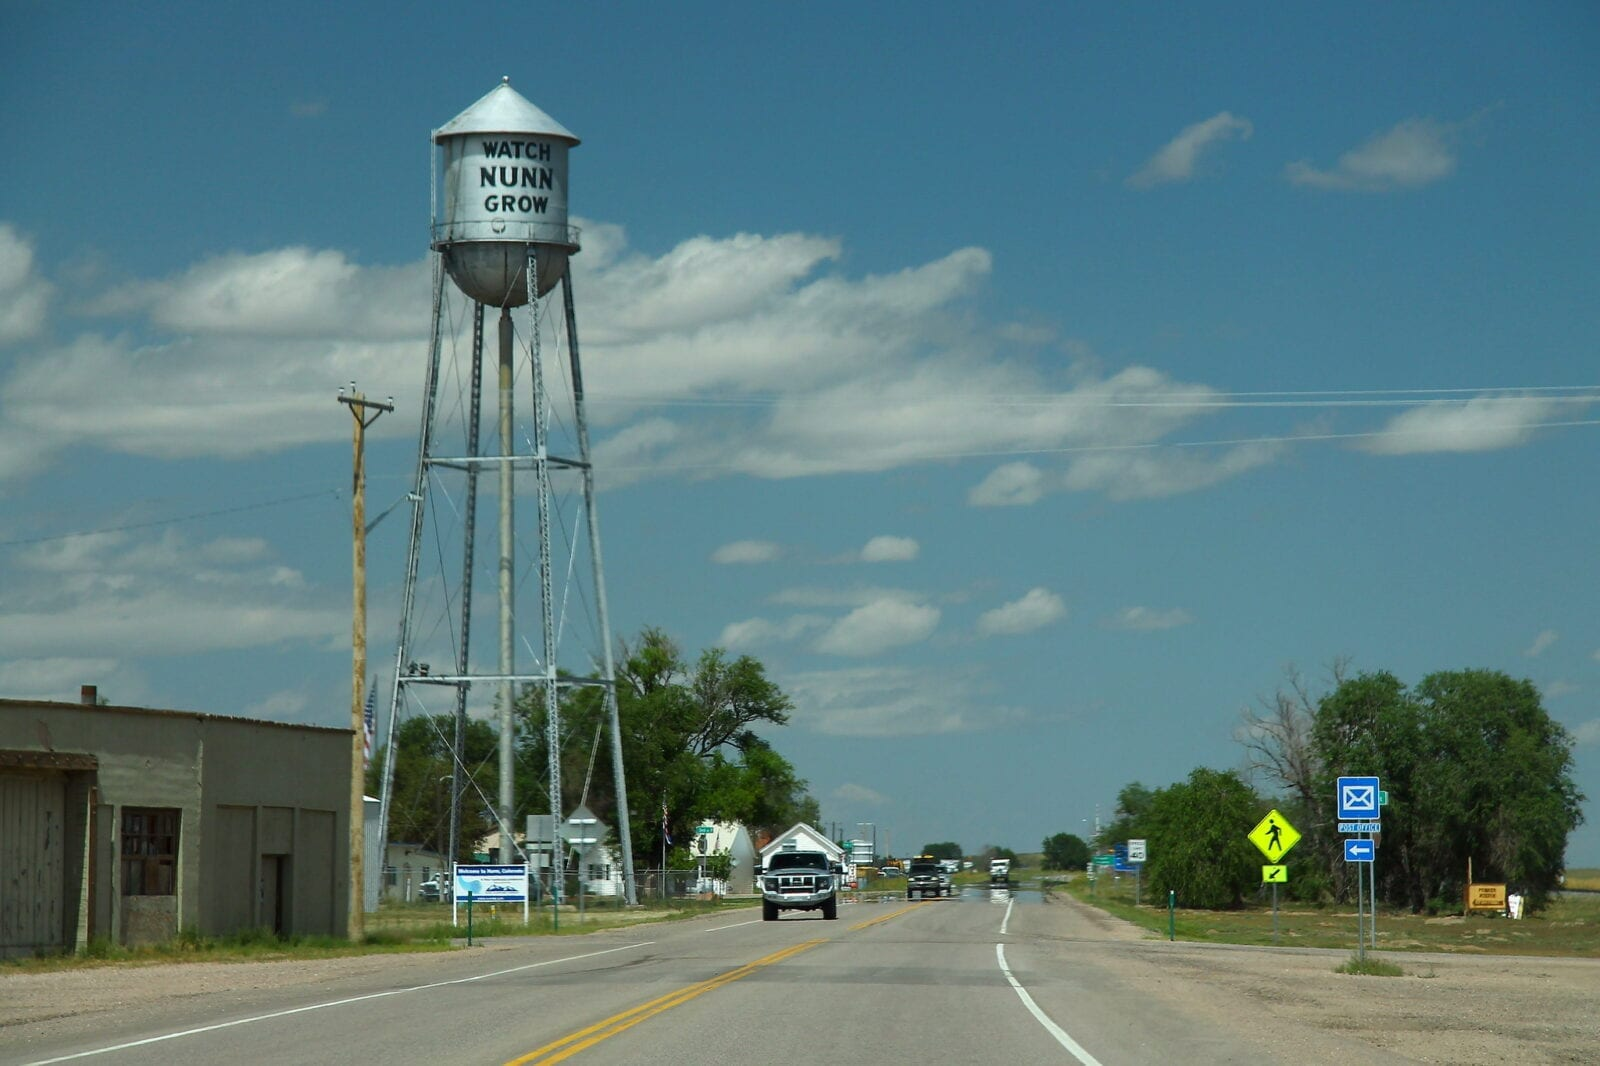 image of nunn water tower